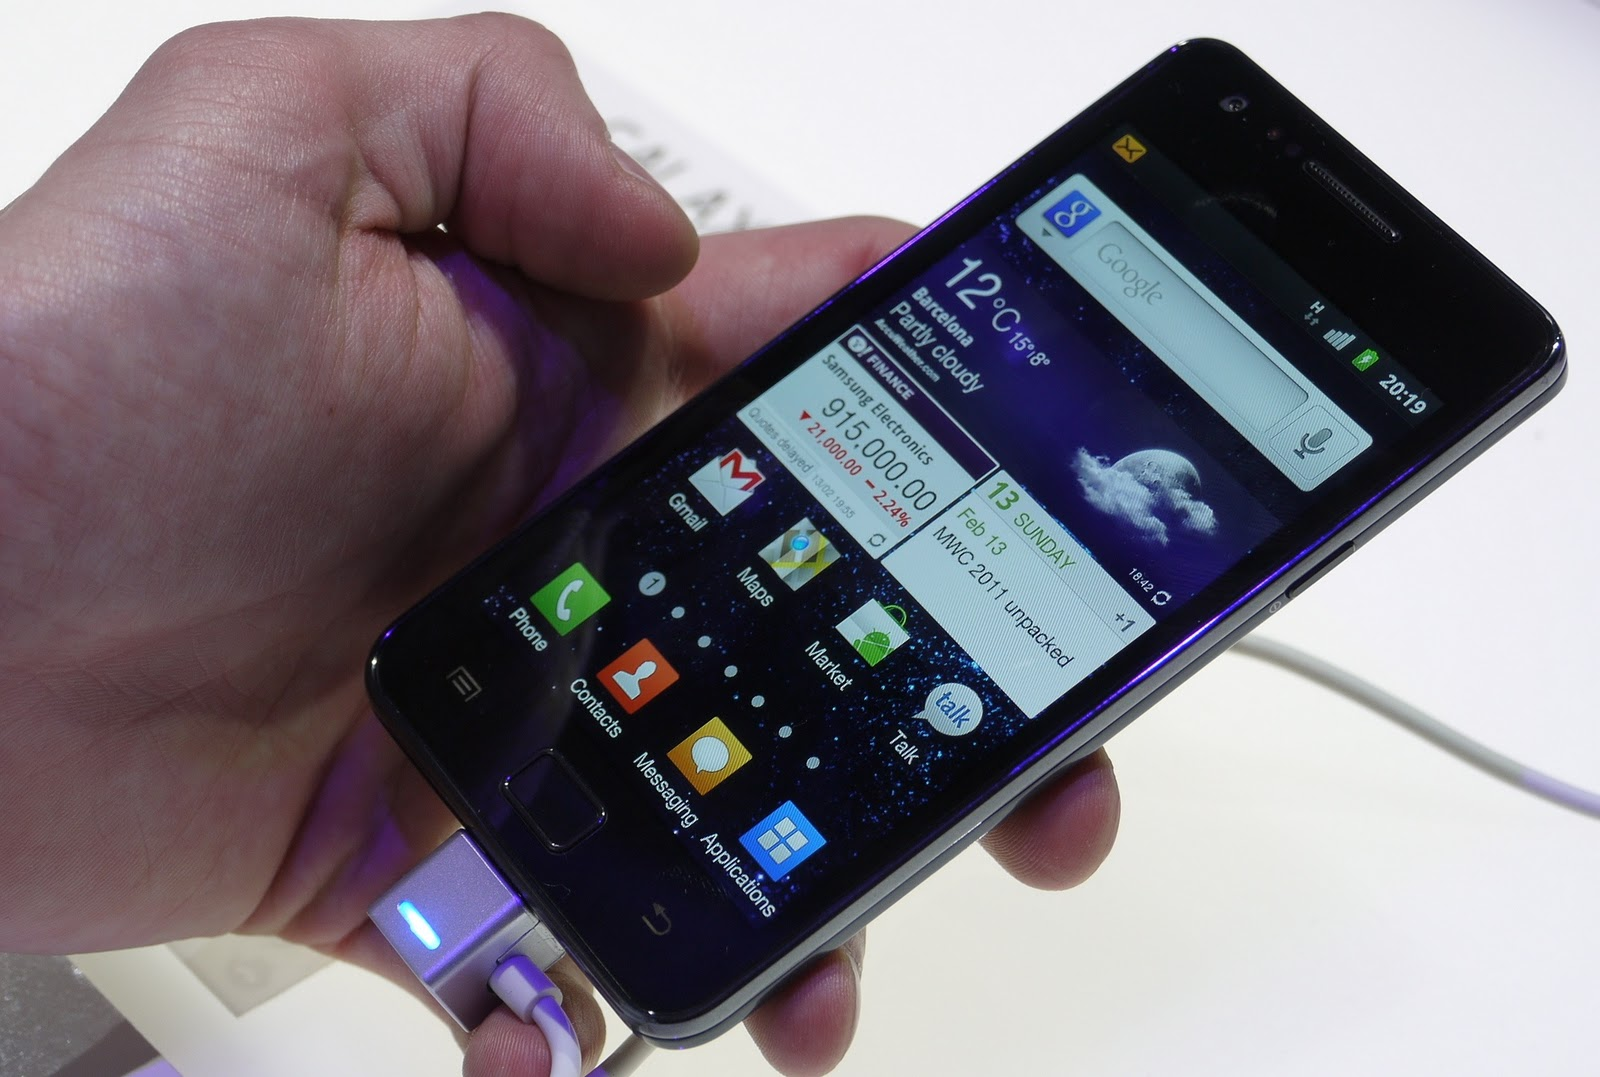 Samsung Galaxy S II pre-orders eclipse 3 million units worldwide